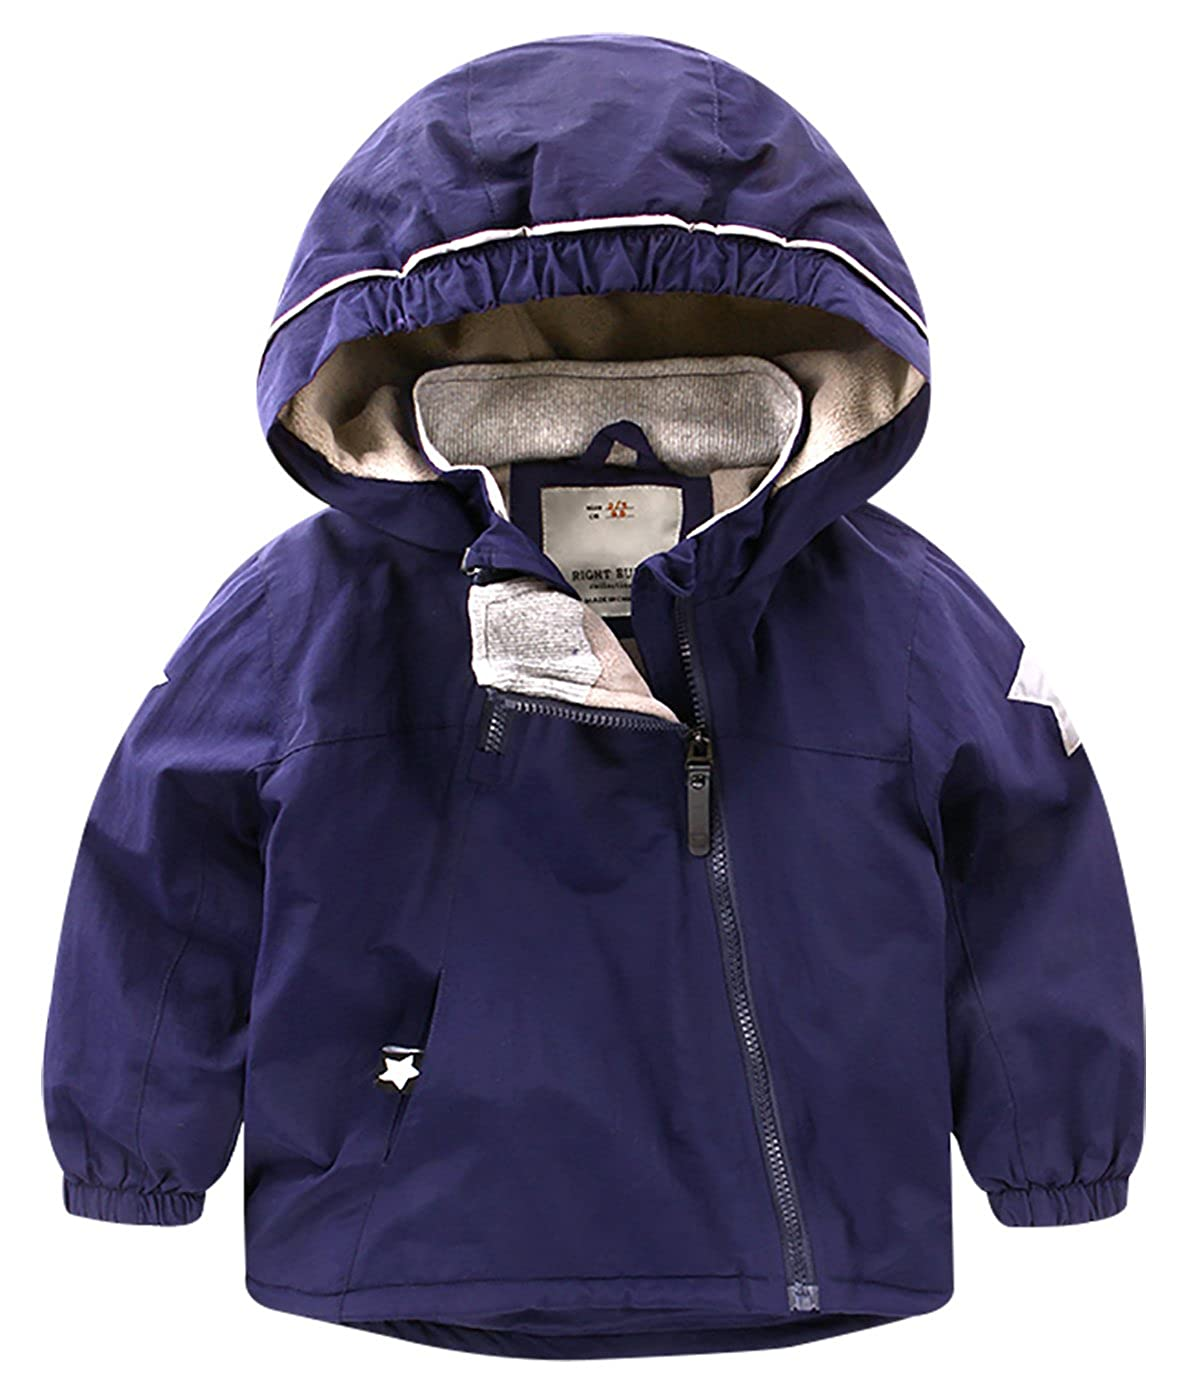 Toddler Kids Outerwear Jackets Coats Children Zipper Hooded Down Jacket Outfit Right Euro